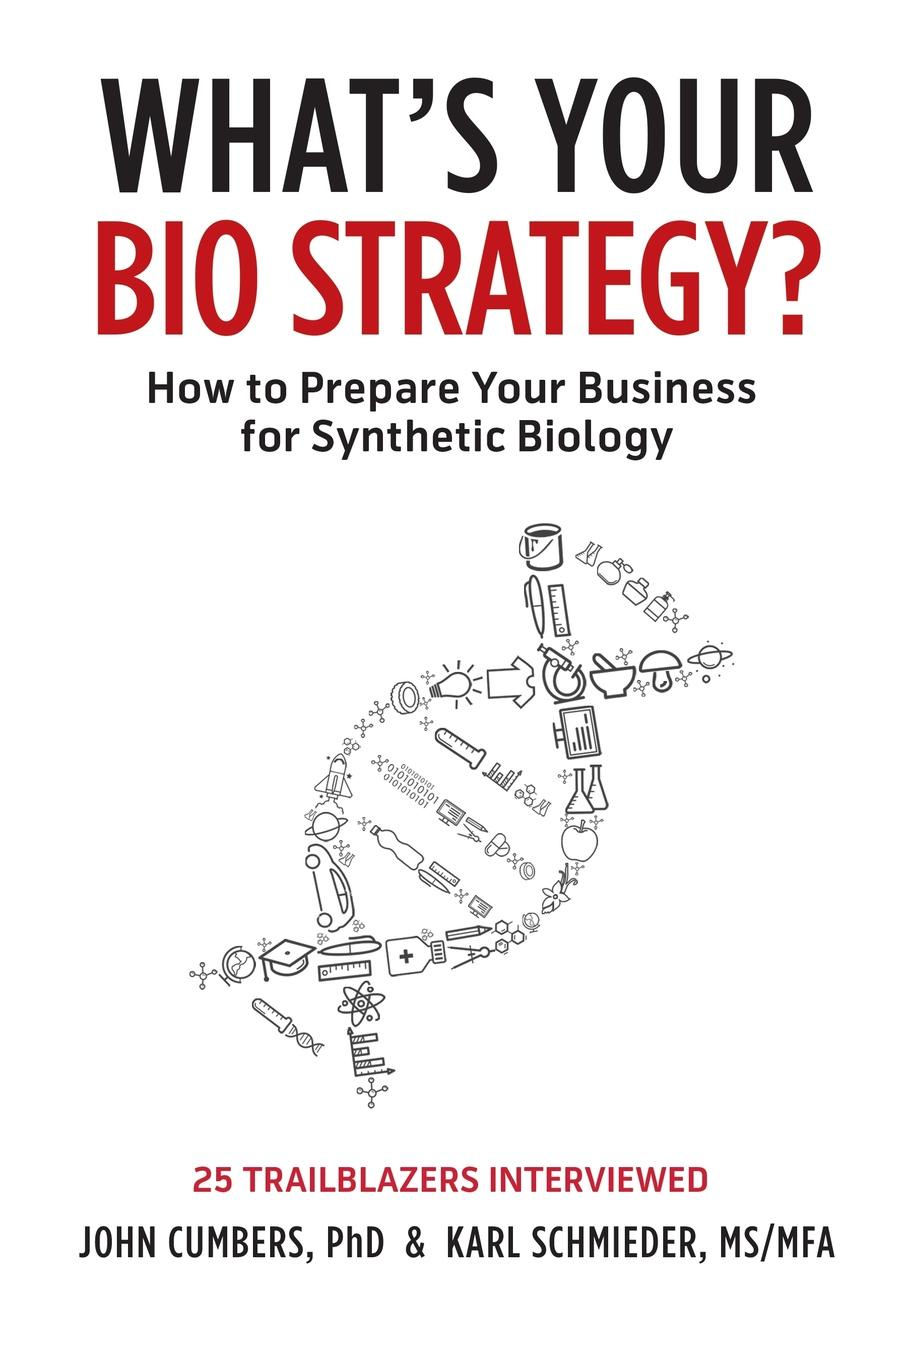 John Cumbers, Karl Schmieder What's Your Bio Strategy? How to Prepare Your Business for Synthetic Biology chiarabelli cristiano chemical synthetic biology